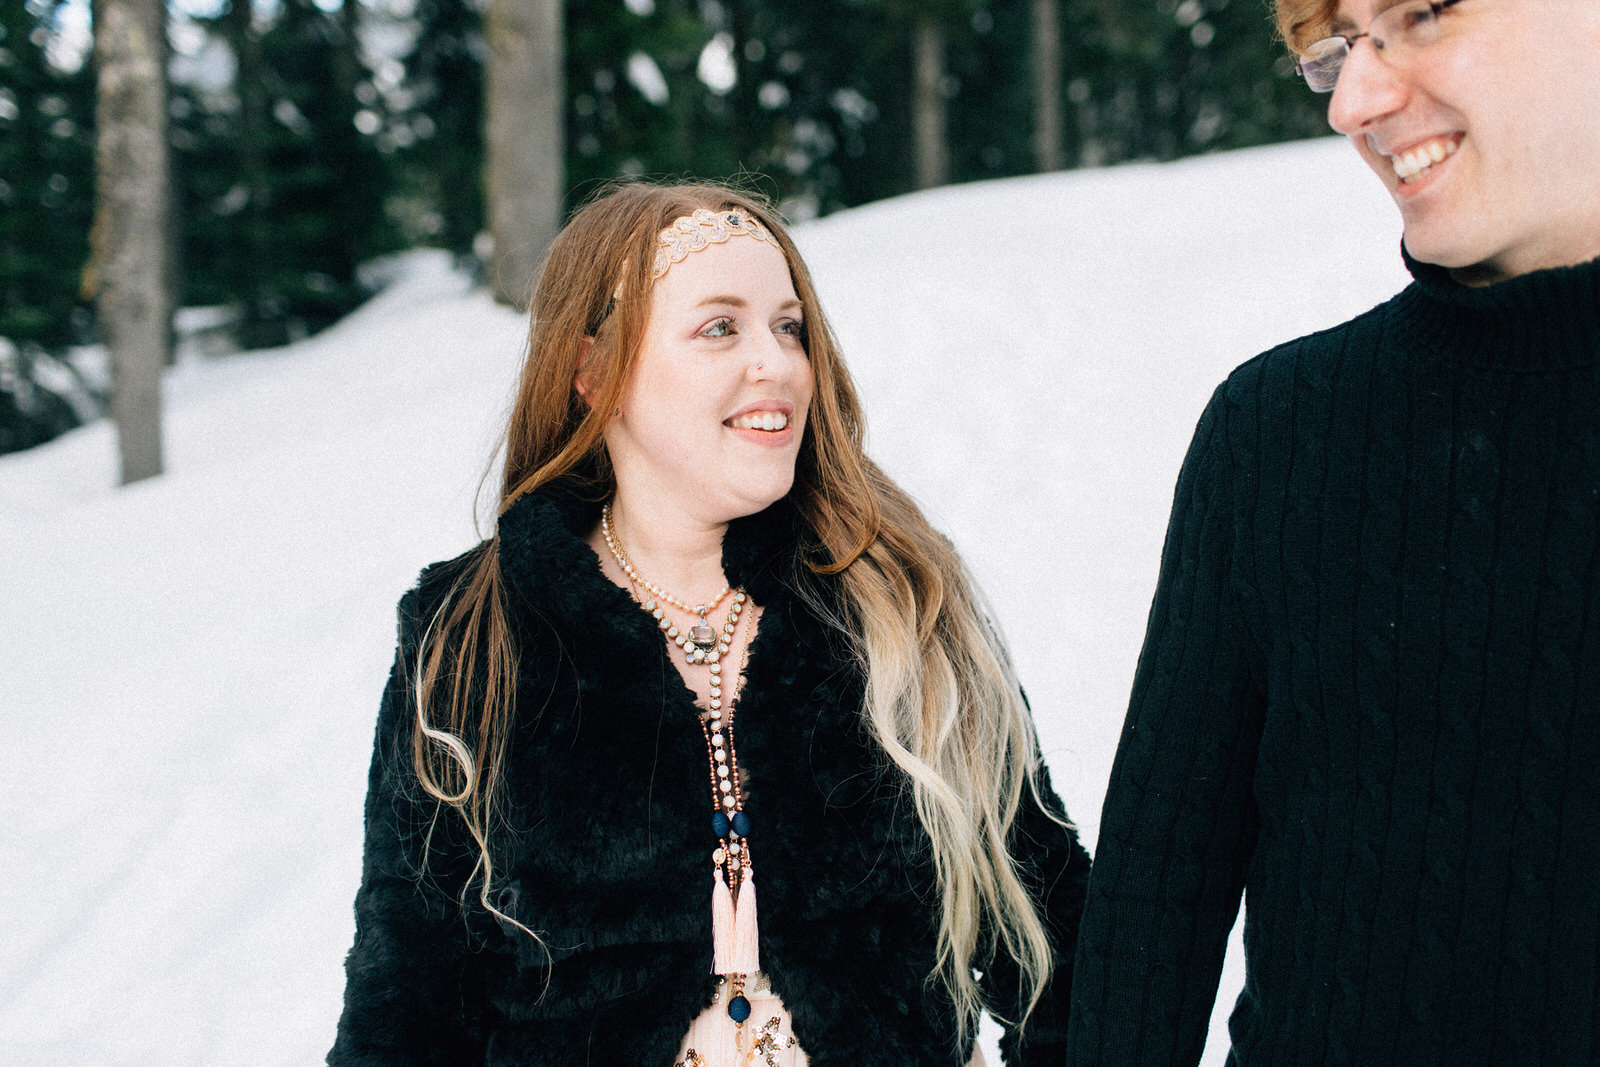 Snoqualmie Pass fuck yeah weddings engagement session snow mountains kendall shea feminist photographer